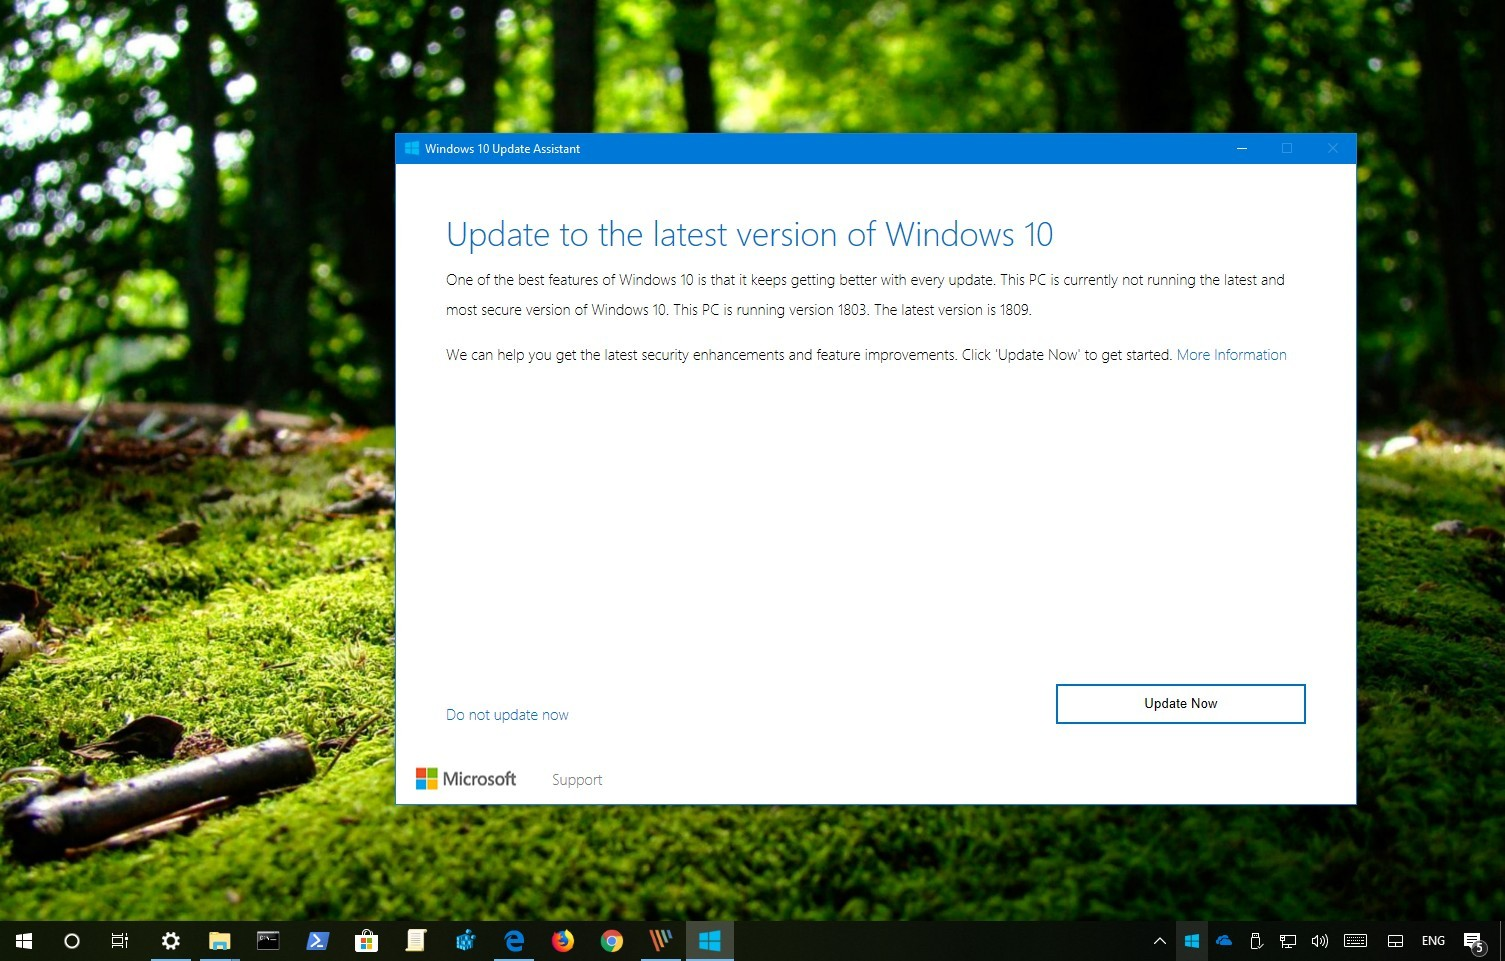 Windows 10 version 1809 download using Update Assistant